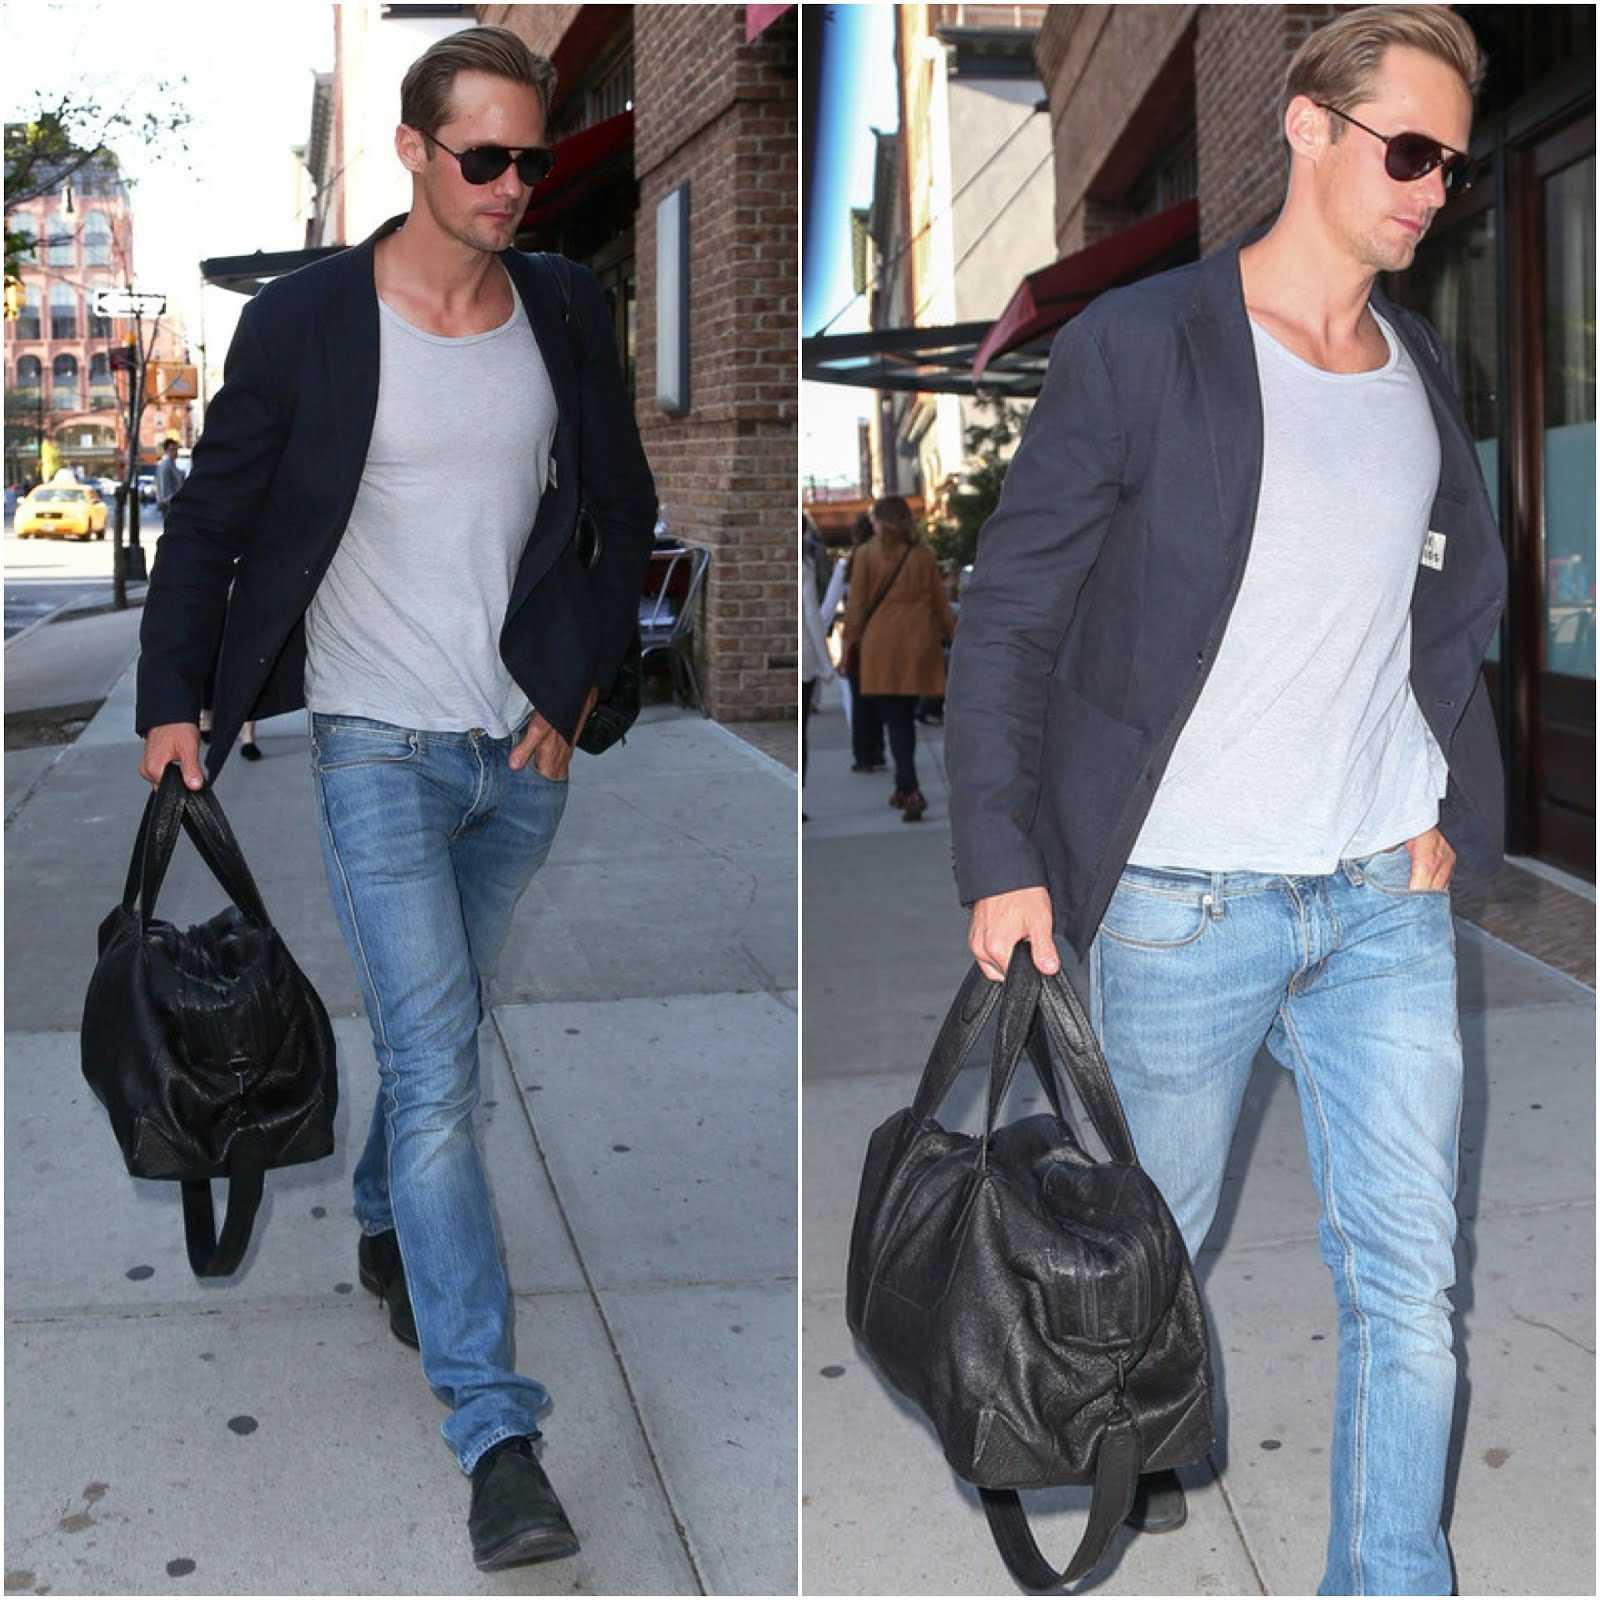 00O00 Menswear Blog: Alexander Skarsgard's Alexander Wang 'Wallie' Duffle - New York Street Style May 2013